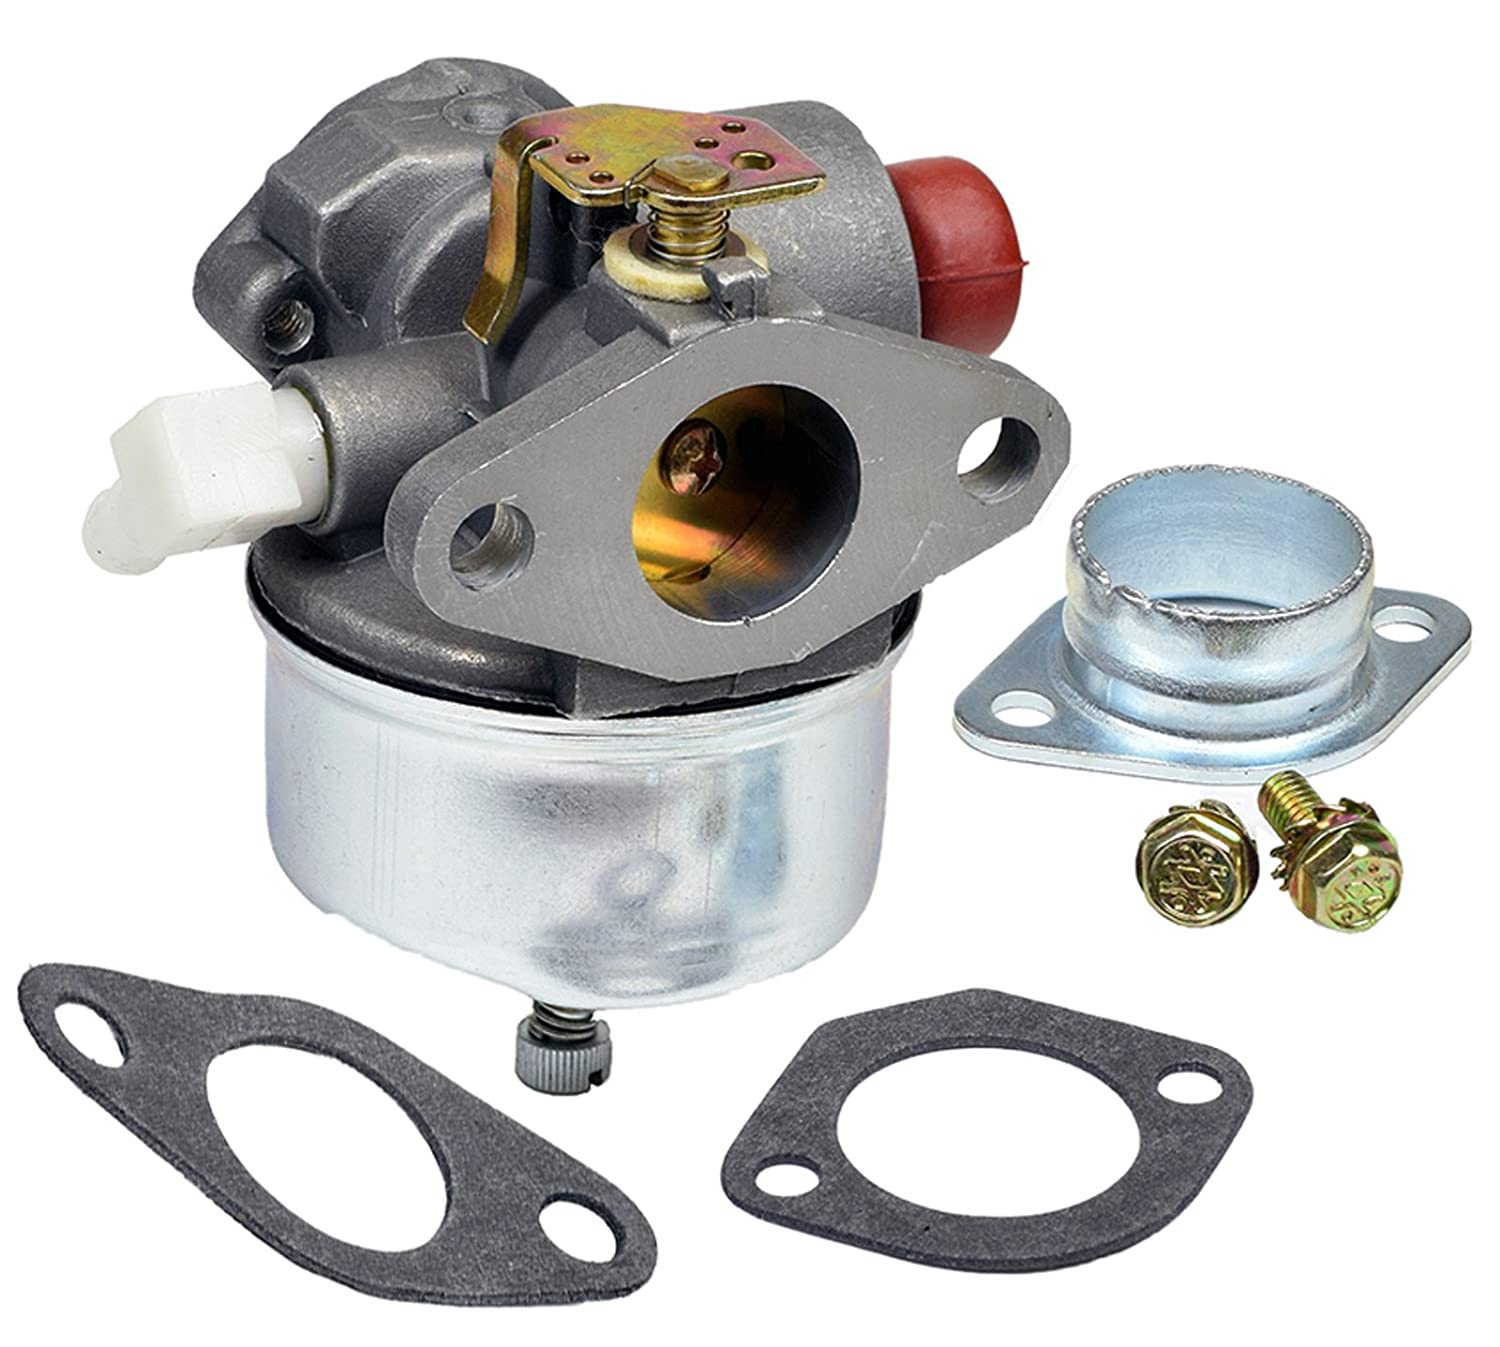 Carburetor Replaces Tecumseh Parts 632078A 632086 632087 632088 632098 632099 Glenparts